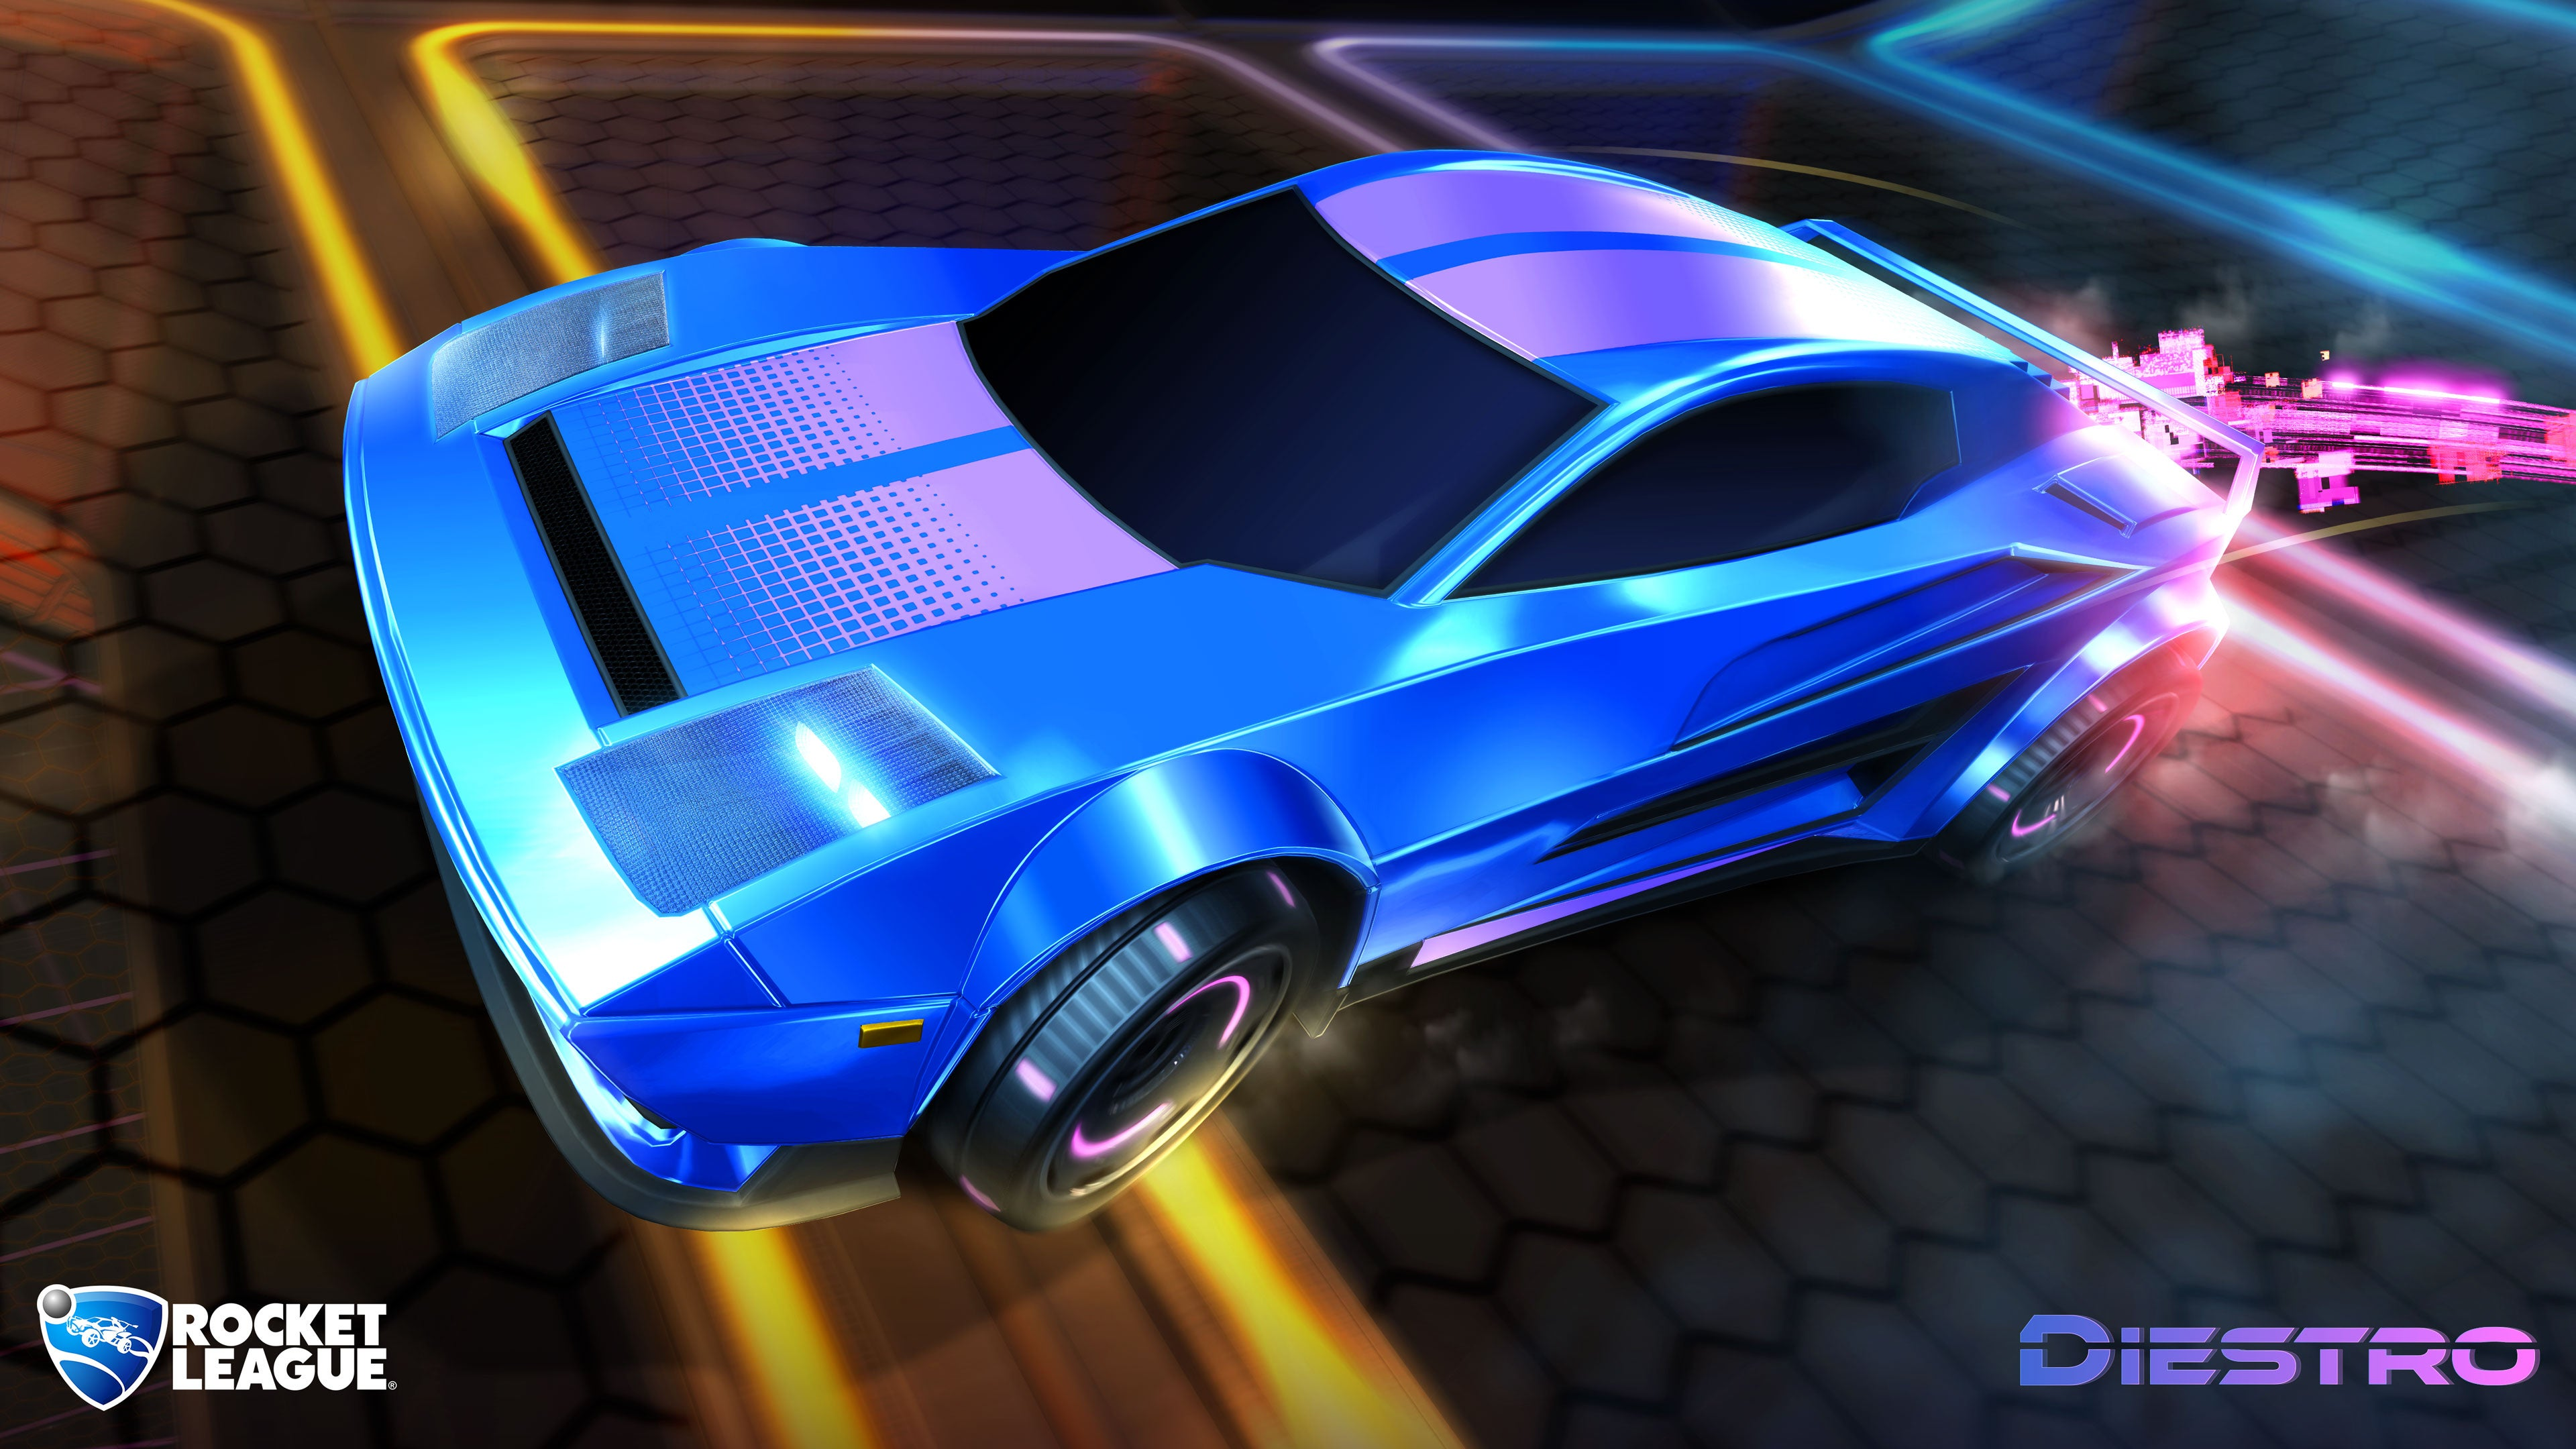 IMAGE(https://rocketleague.media.zestyio.com/rl_hero_diestro.jpg)